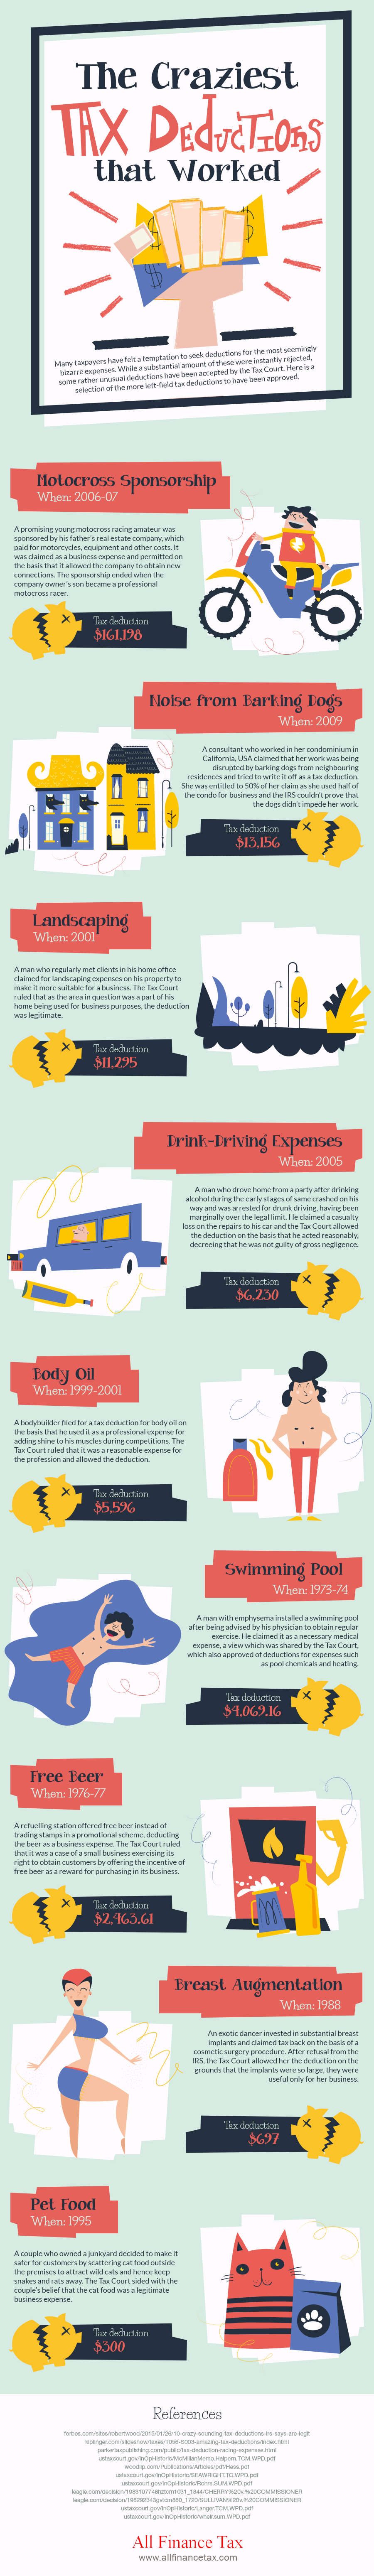 the-craziest-tax-deductions-that-worked-infographic